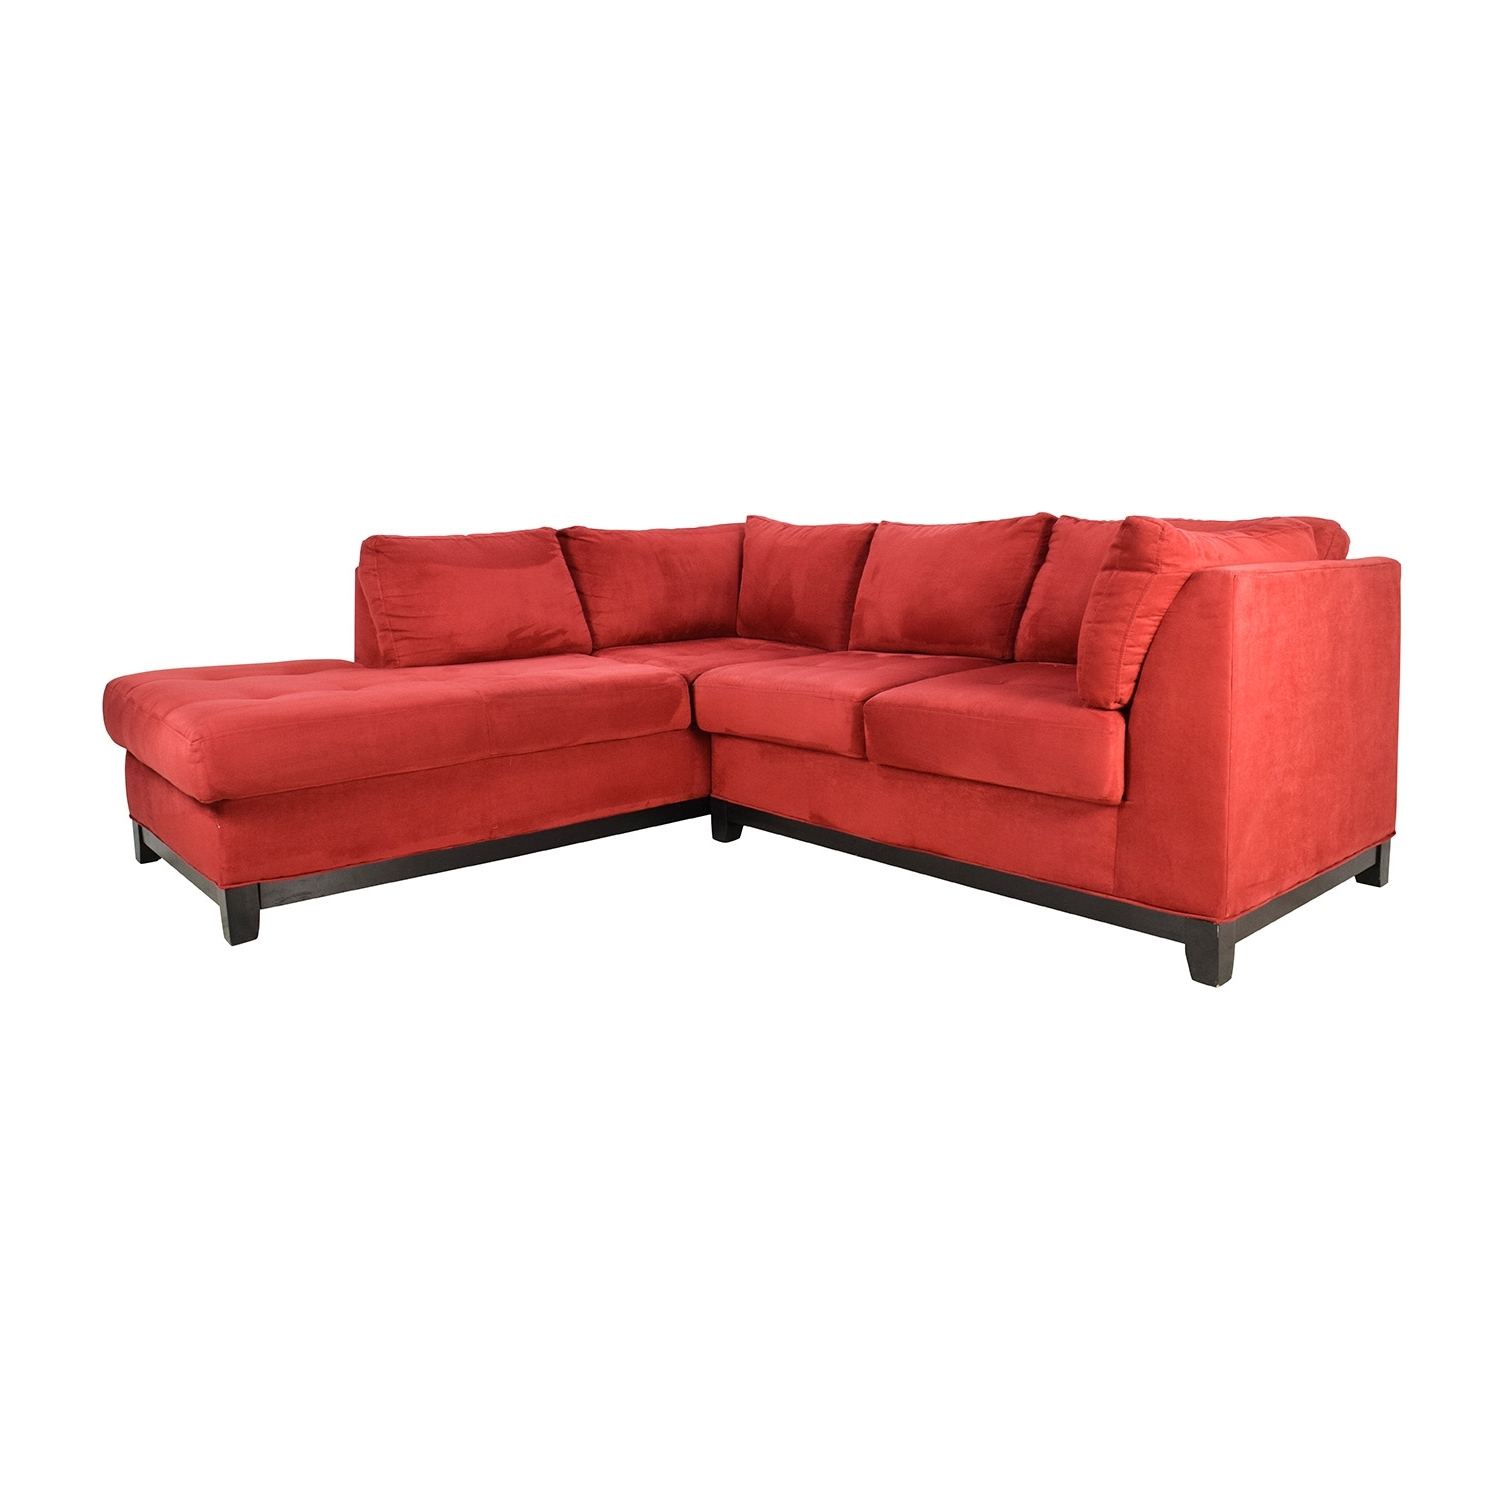 [%67% Off – Raymour And Flanigan Raymour & Flanigan Zella Red Within Best And Newest Sectional Sofas At Raymour And Flanigan|sectional Sofas At Raymour And Flanigan Inside 2019 67% Off – Raymour And Flanigan Raymour & Flanigan Zella Red|famous Sectional Sofas At Raymour And Flanigan For 67% Off – Raymour And Flanigan Raymour & Flanigan Zella Red|preferred 67% Off – Raymour And Flanigan Raymour & Flanigan Zella Red For Sectional Sofas At Raymour And Flanigan%] (View 19 of 20)